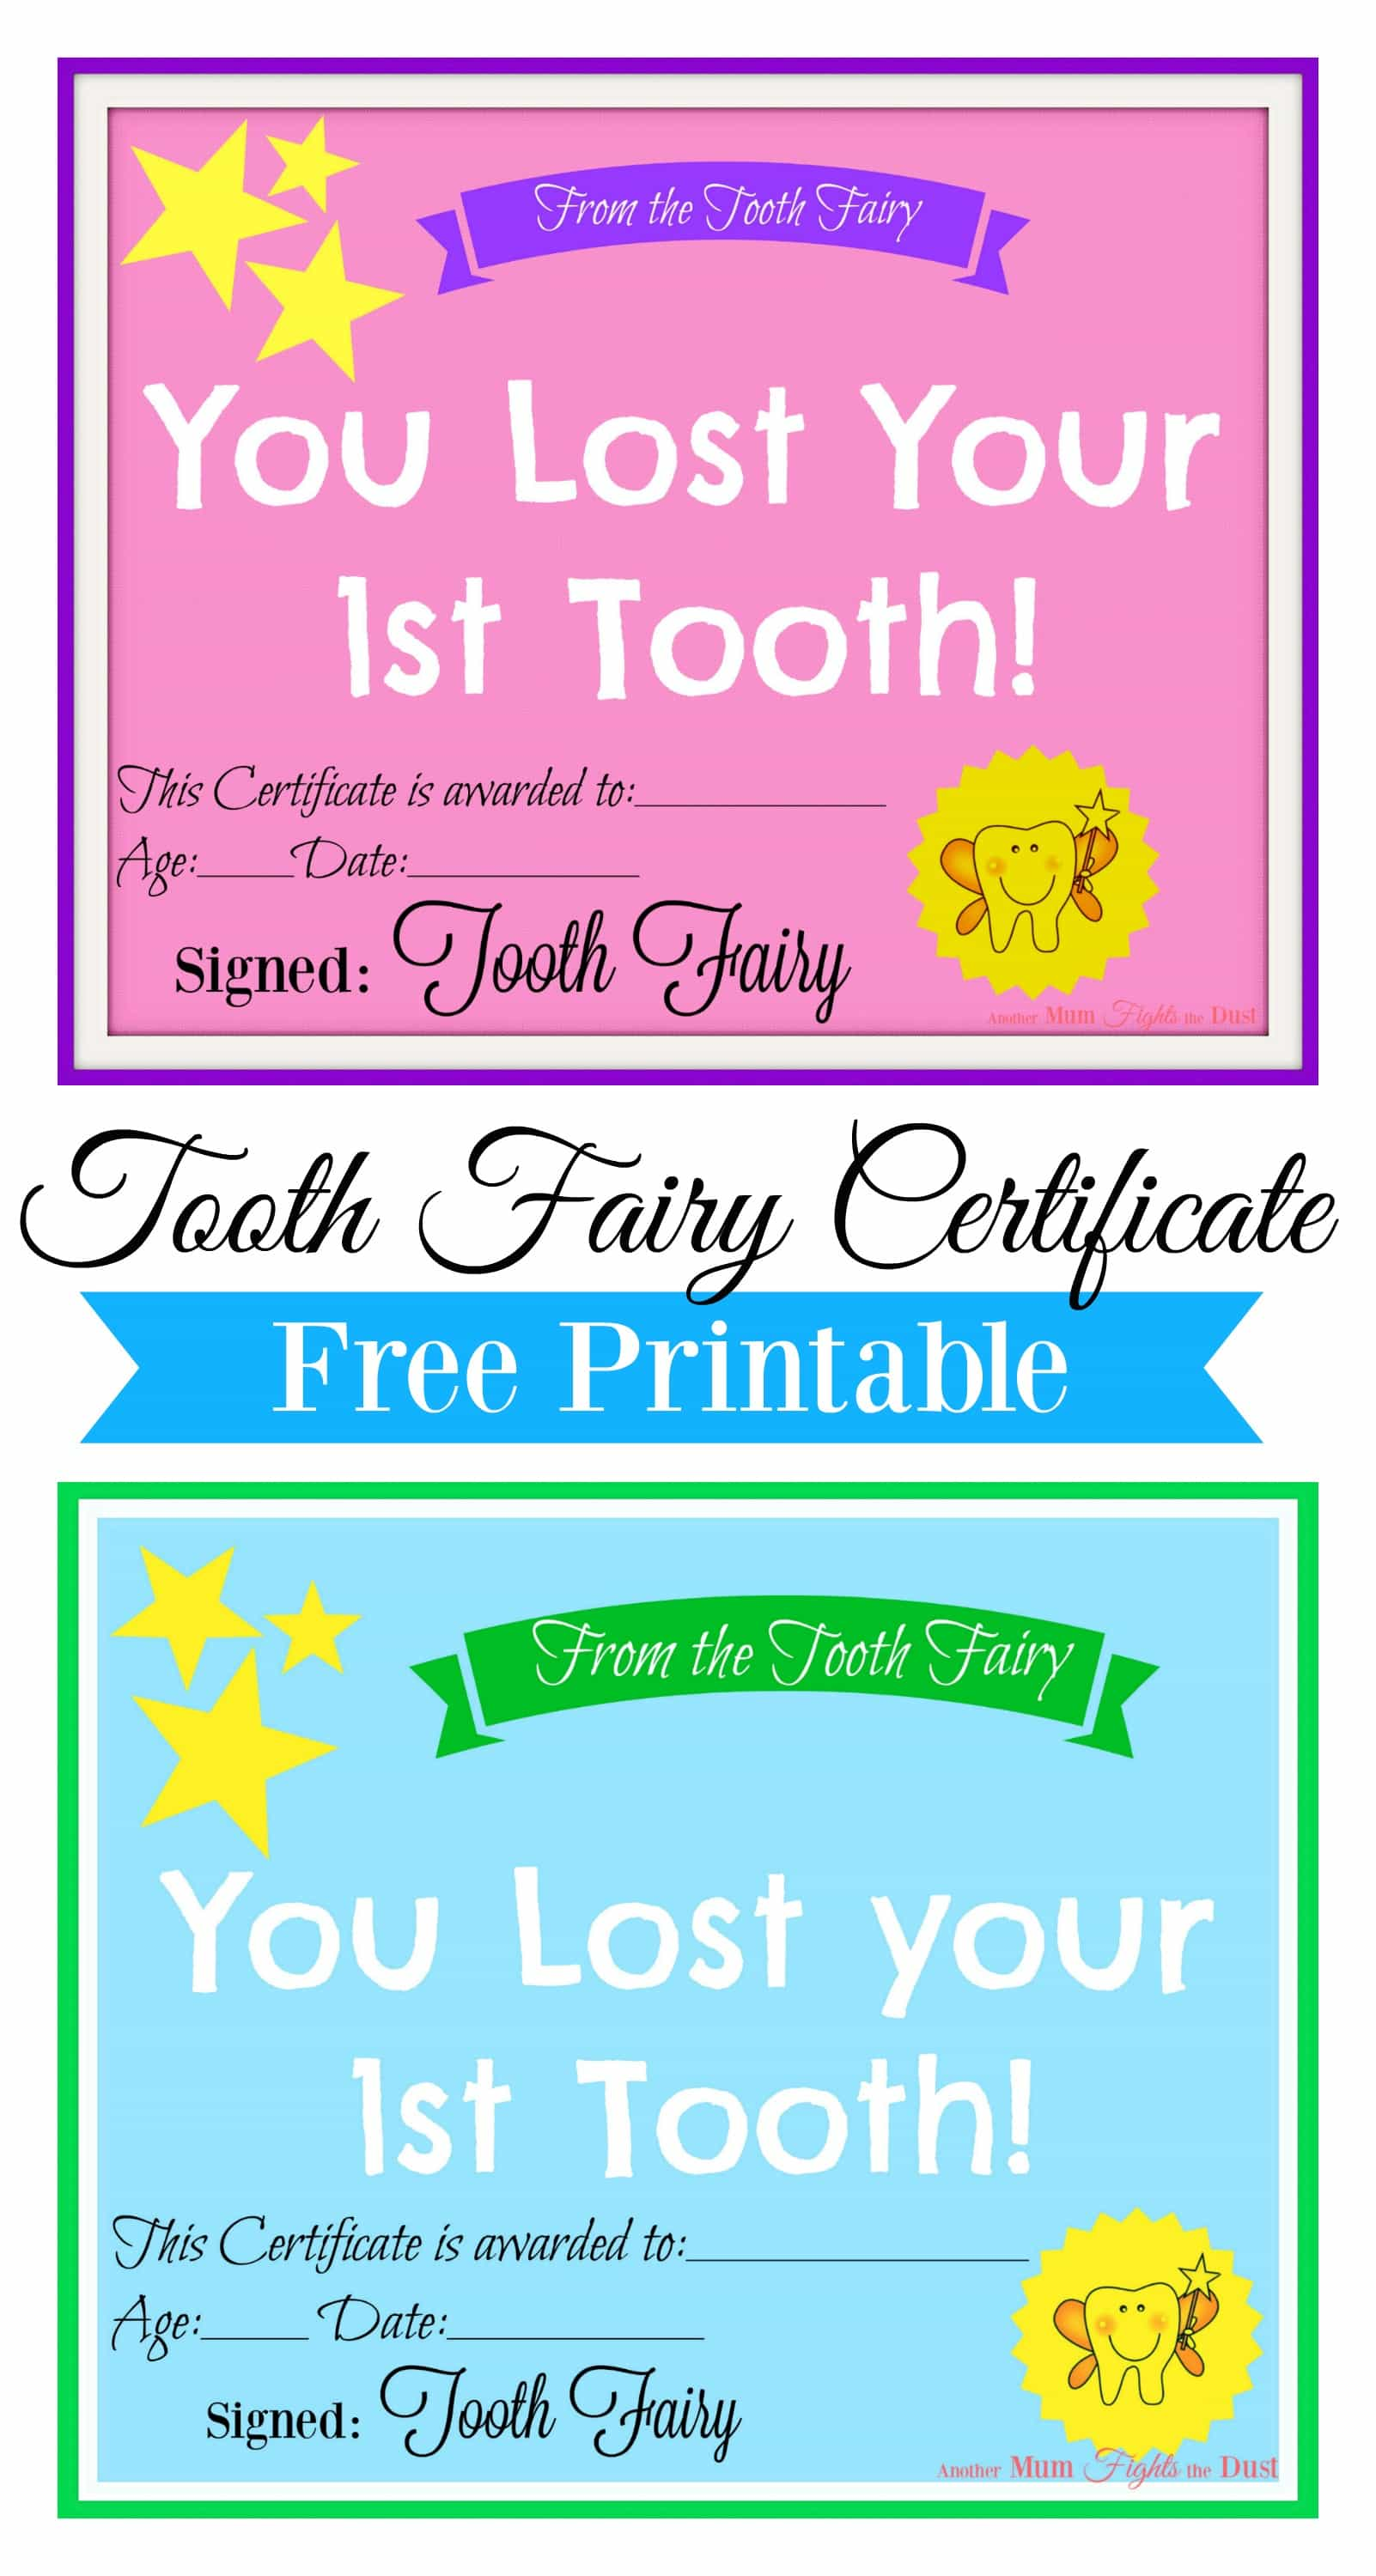 graphic about Tooth Fairy Letter Printable named Cost-free Printable Enamel Fairy Certification - An additional Mum Fights